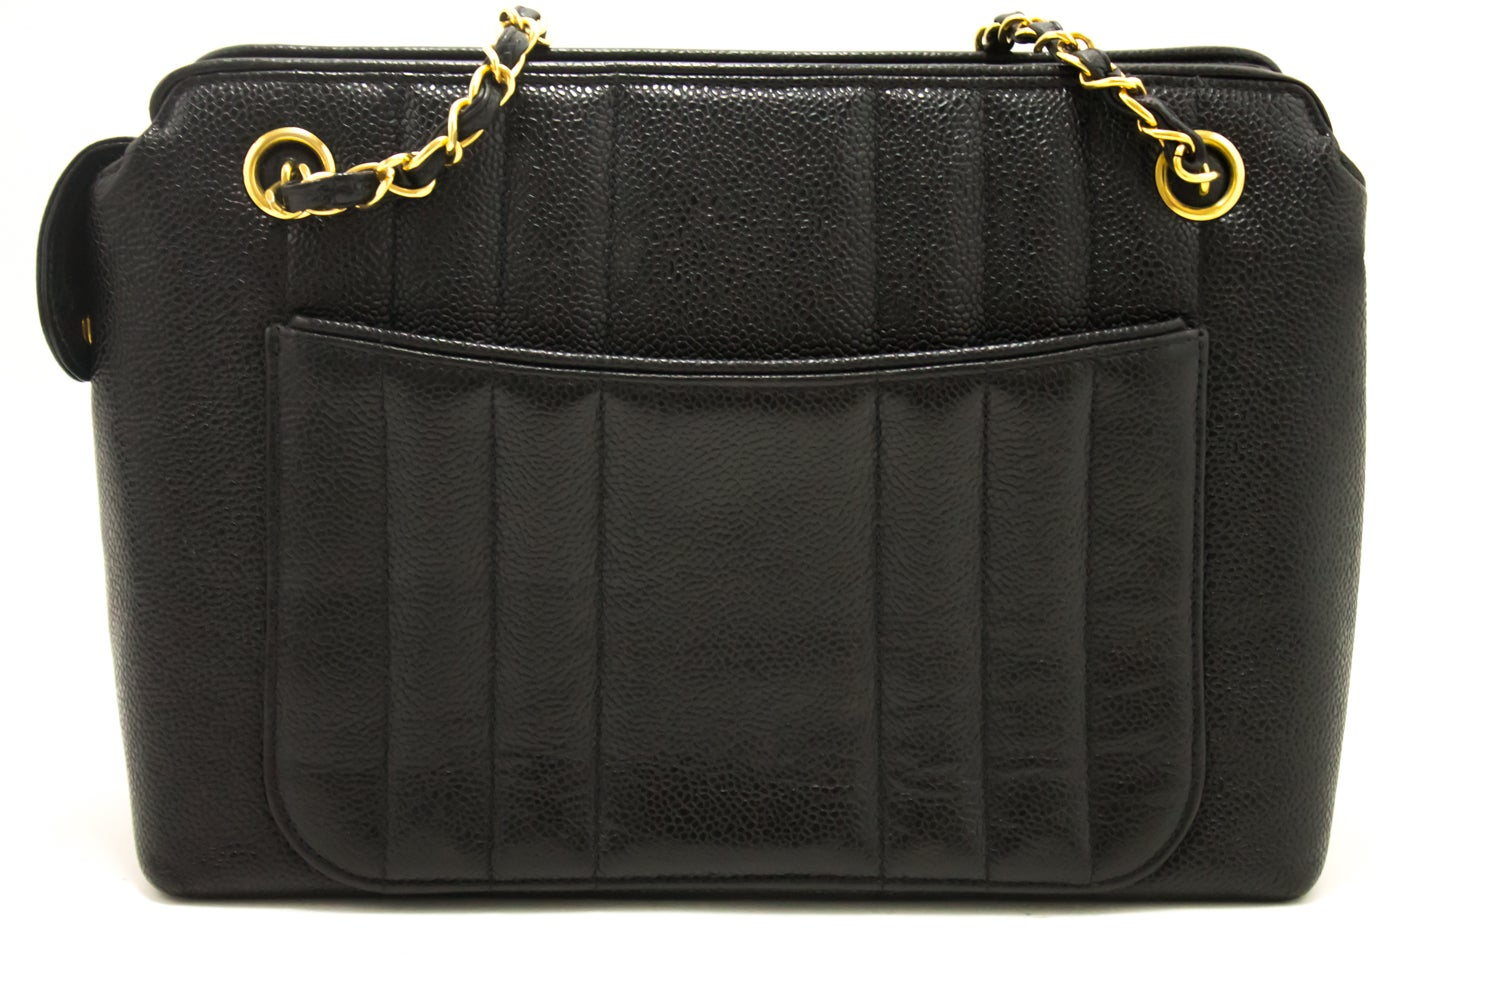 13f4d23343cebc CHANEL Caviar Sun Gold Chain Shoulder Bag Black Quilted Leather at 1stdibs